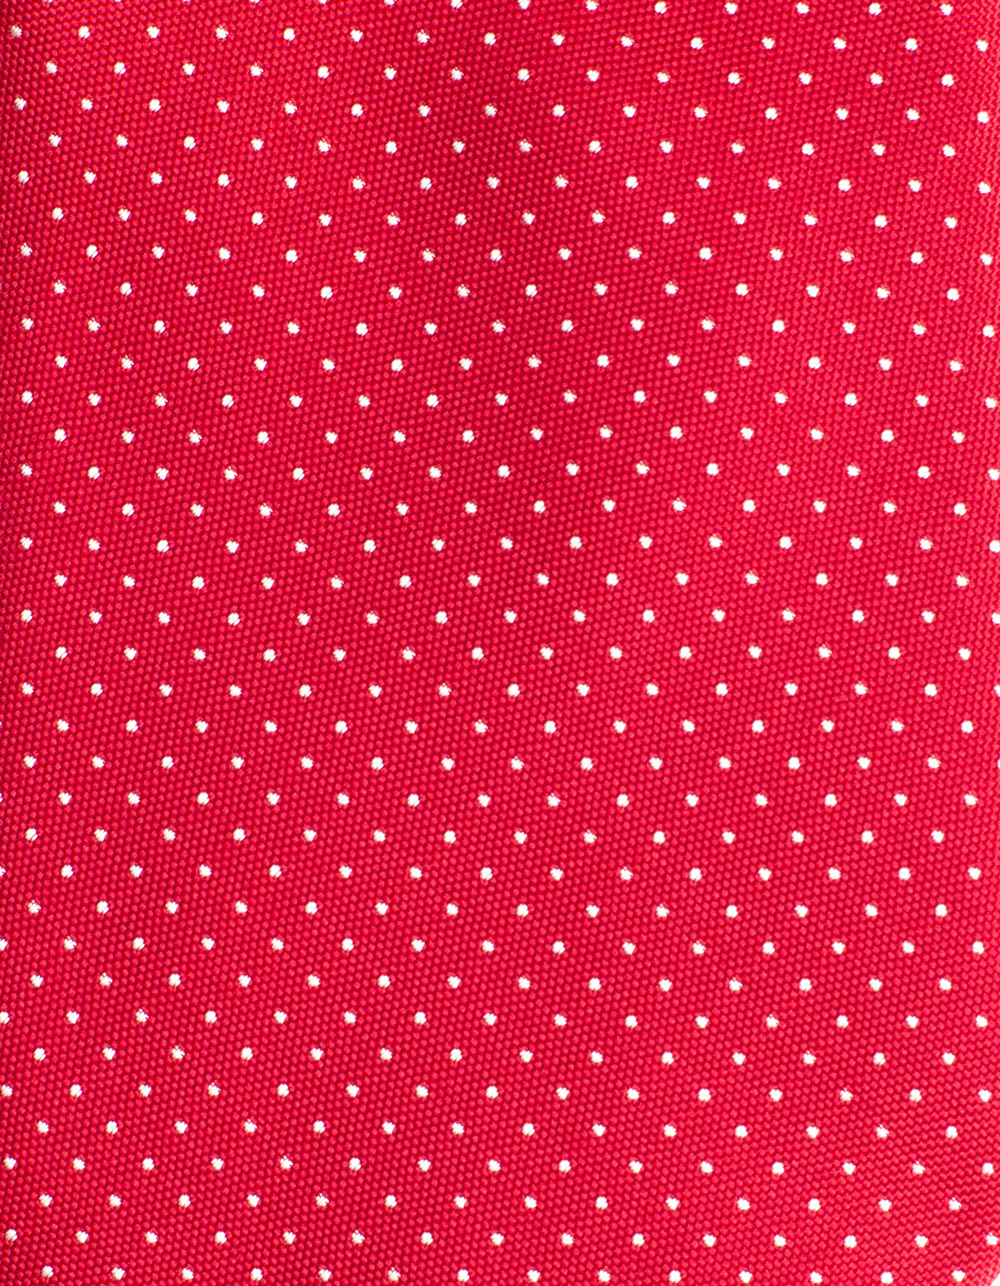 Red tie with micro polka dots - Backside